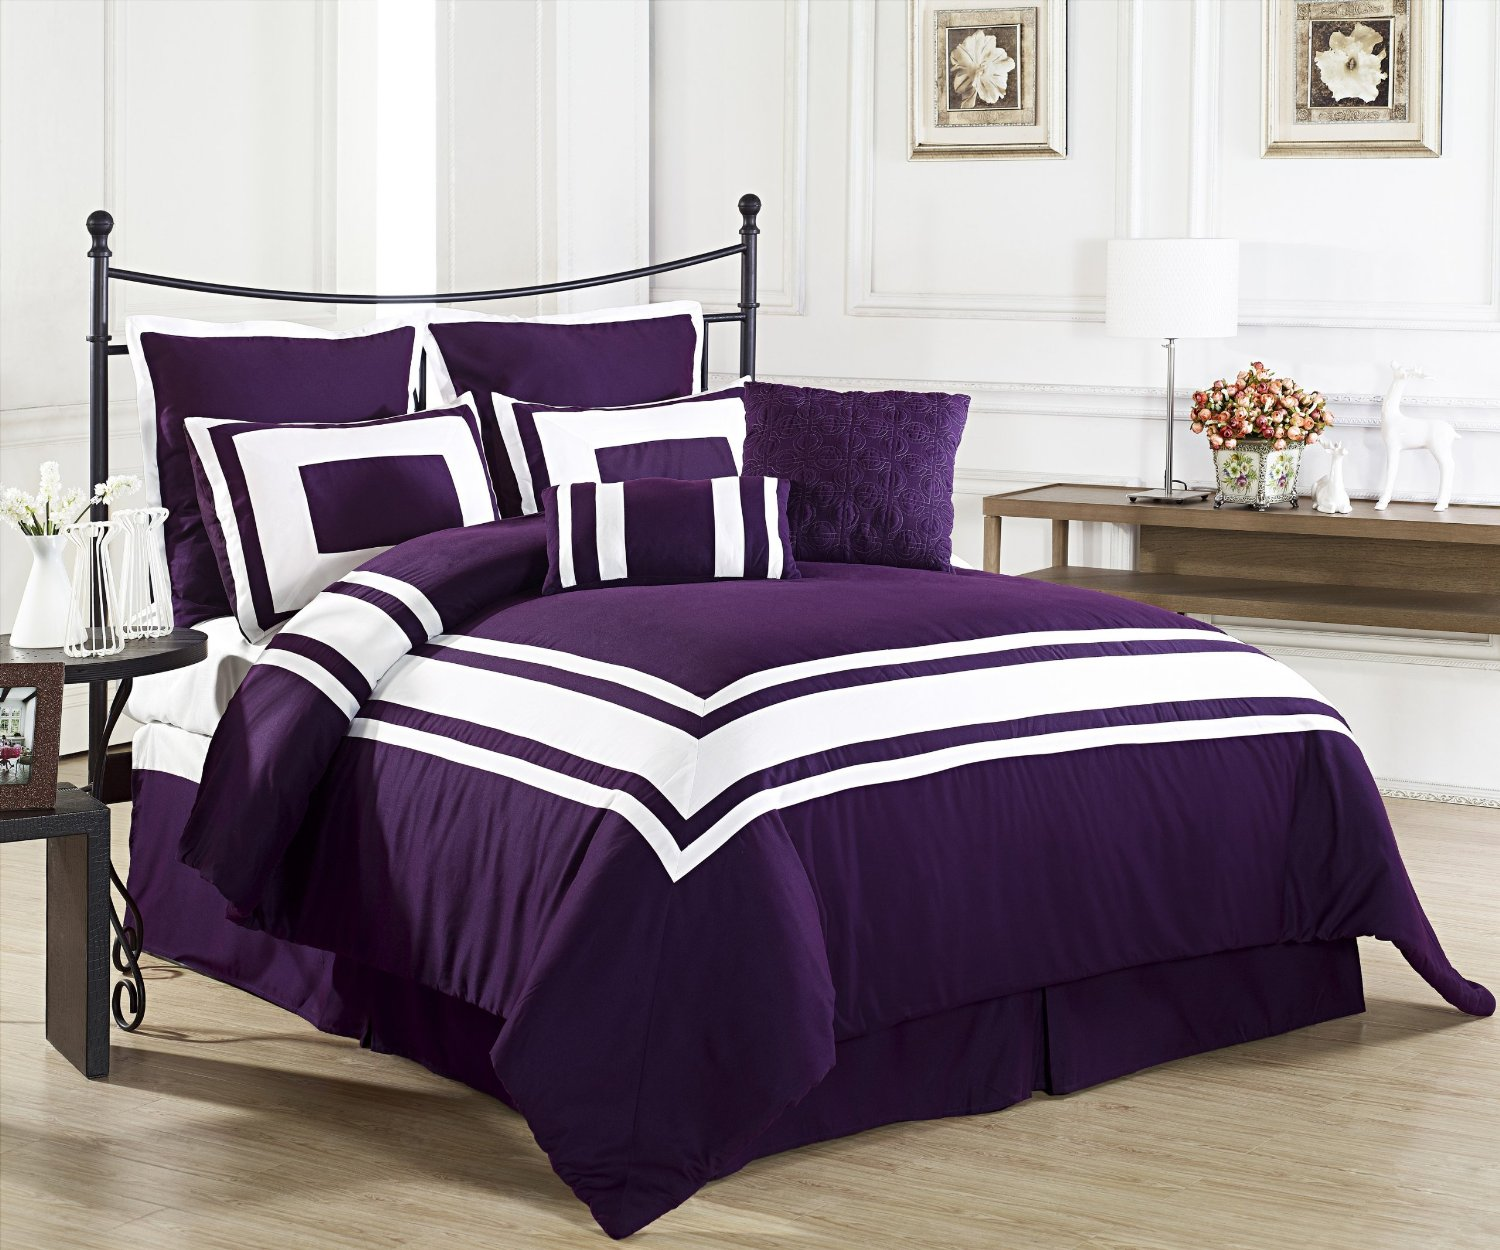 Purple Bedding Sets Perfect Tone For The Season